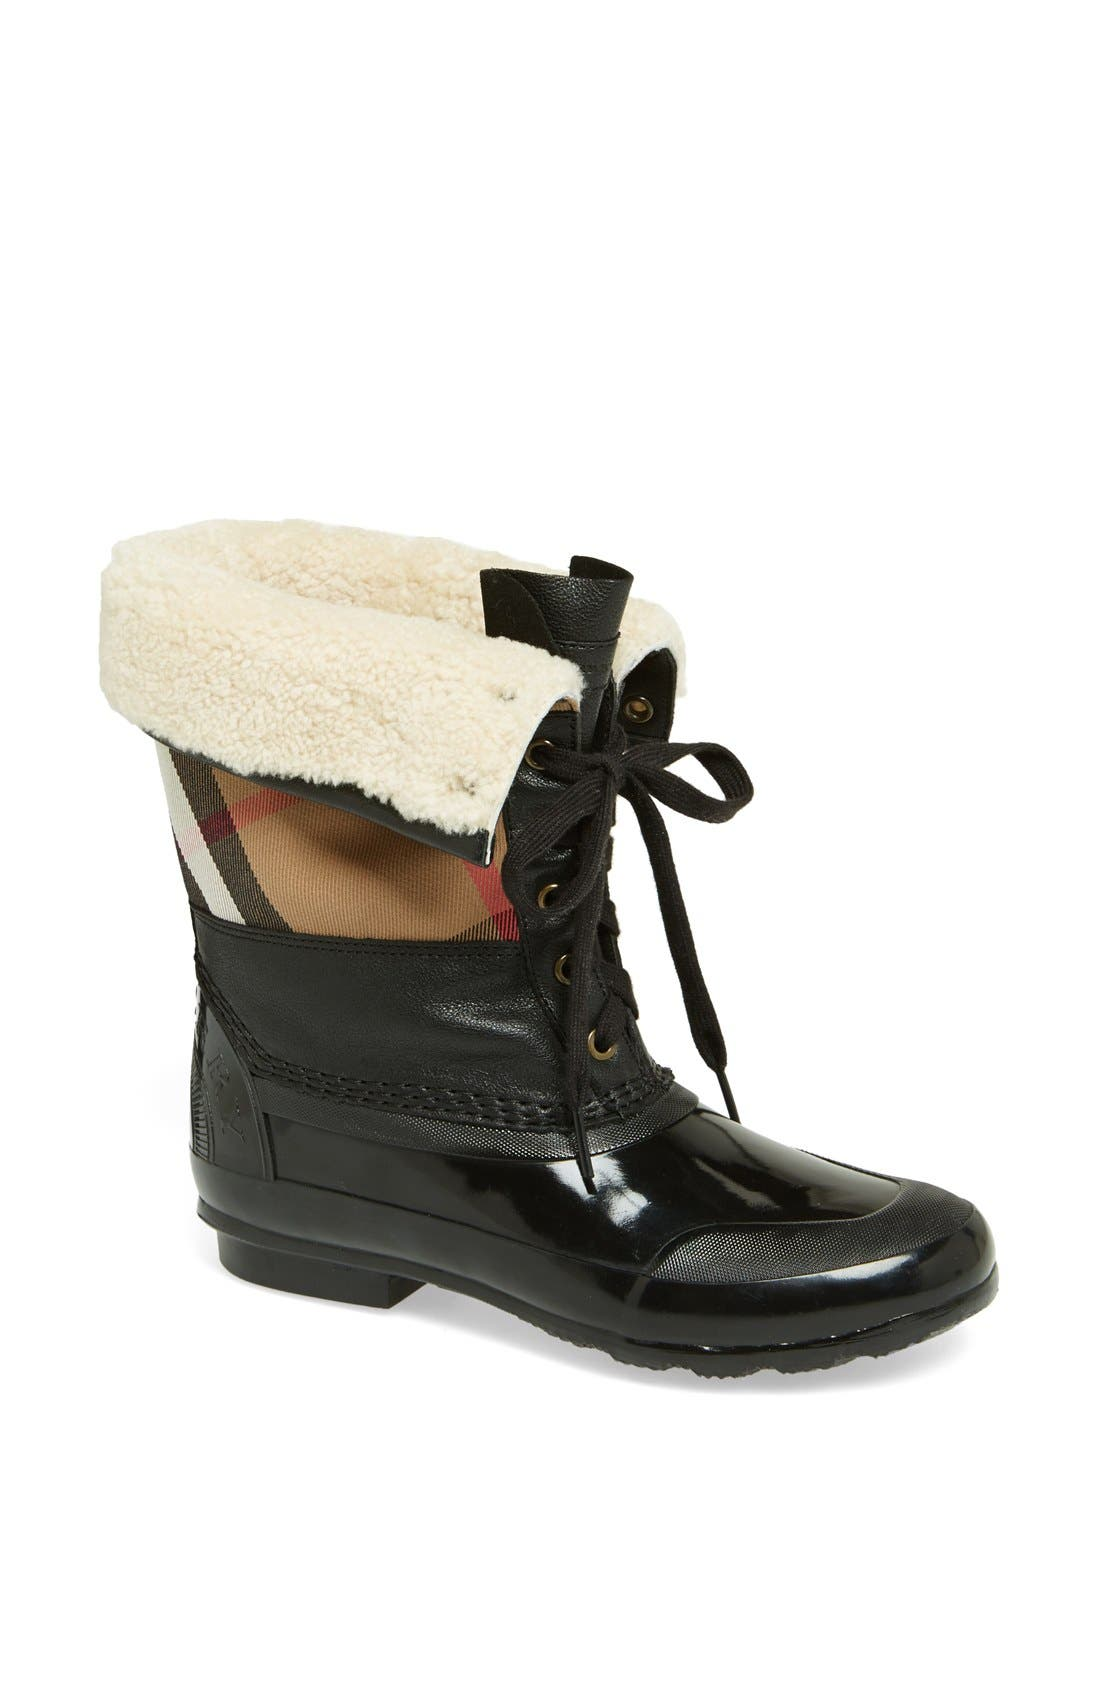 Alternate Image 1 Selected - Burberry 'Danning' Waterproof Bootie